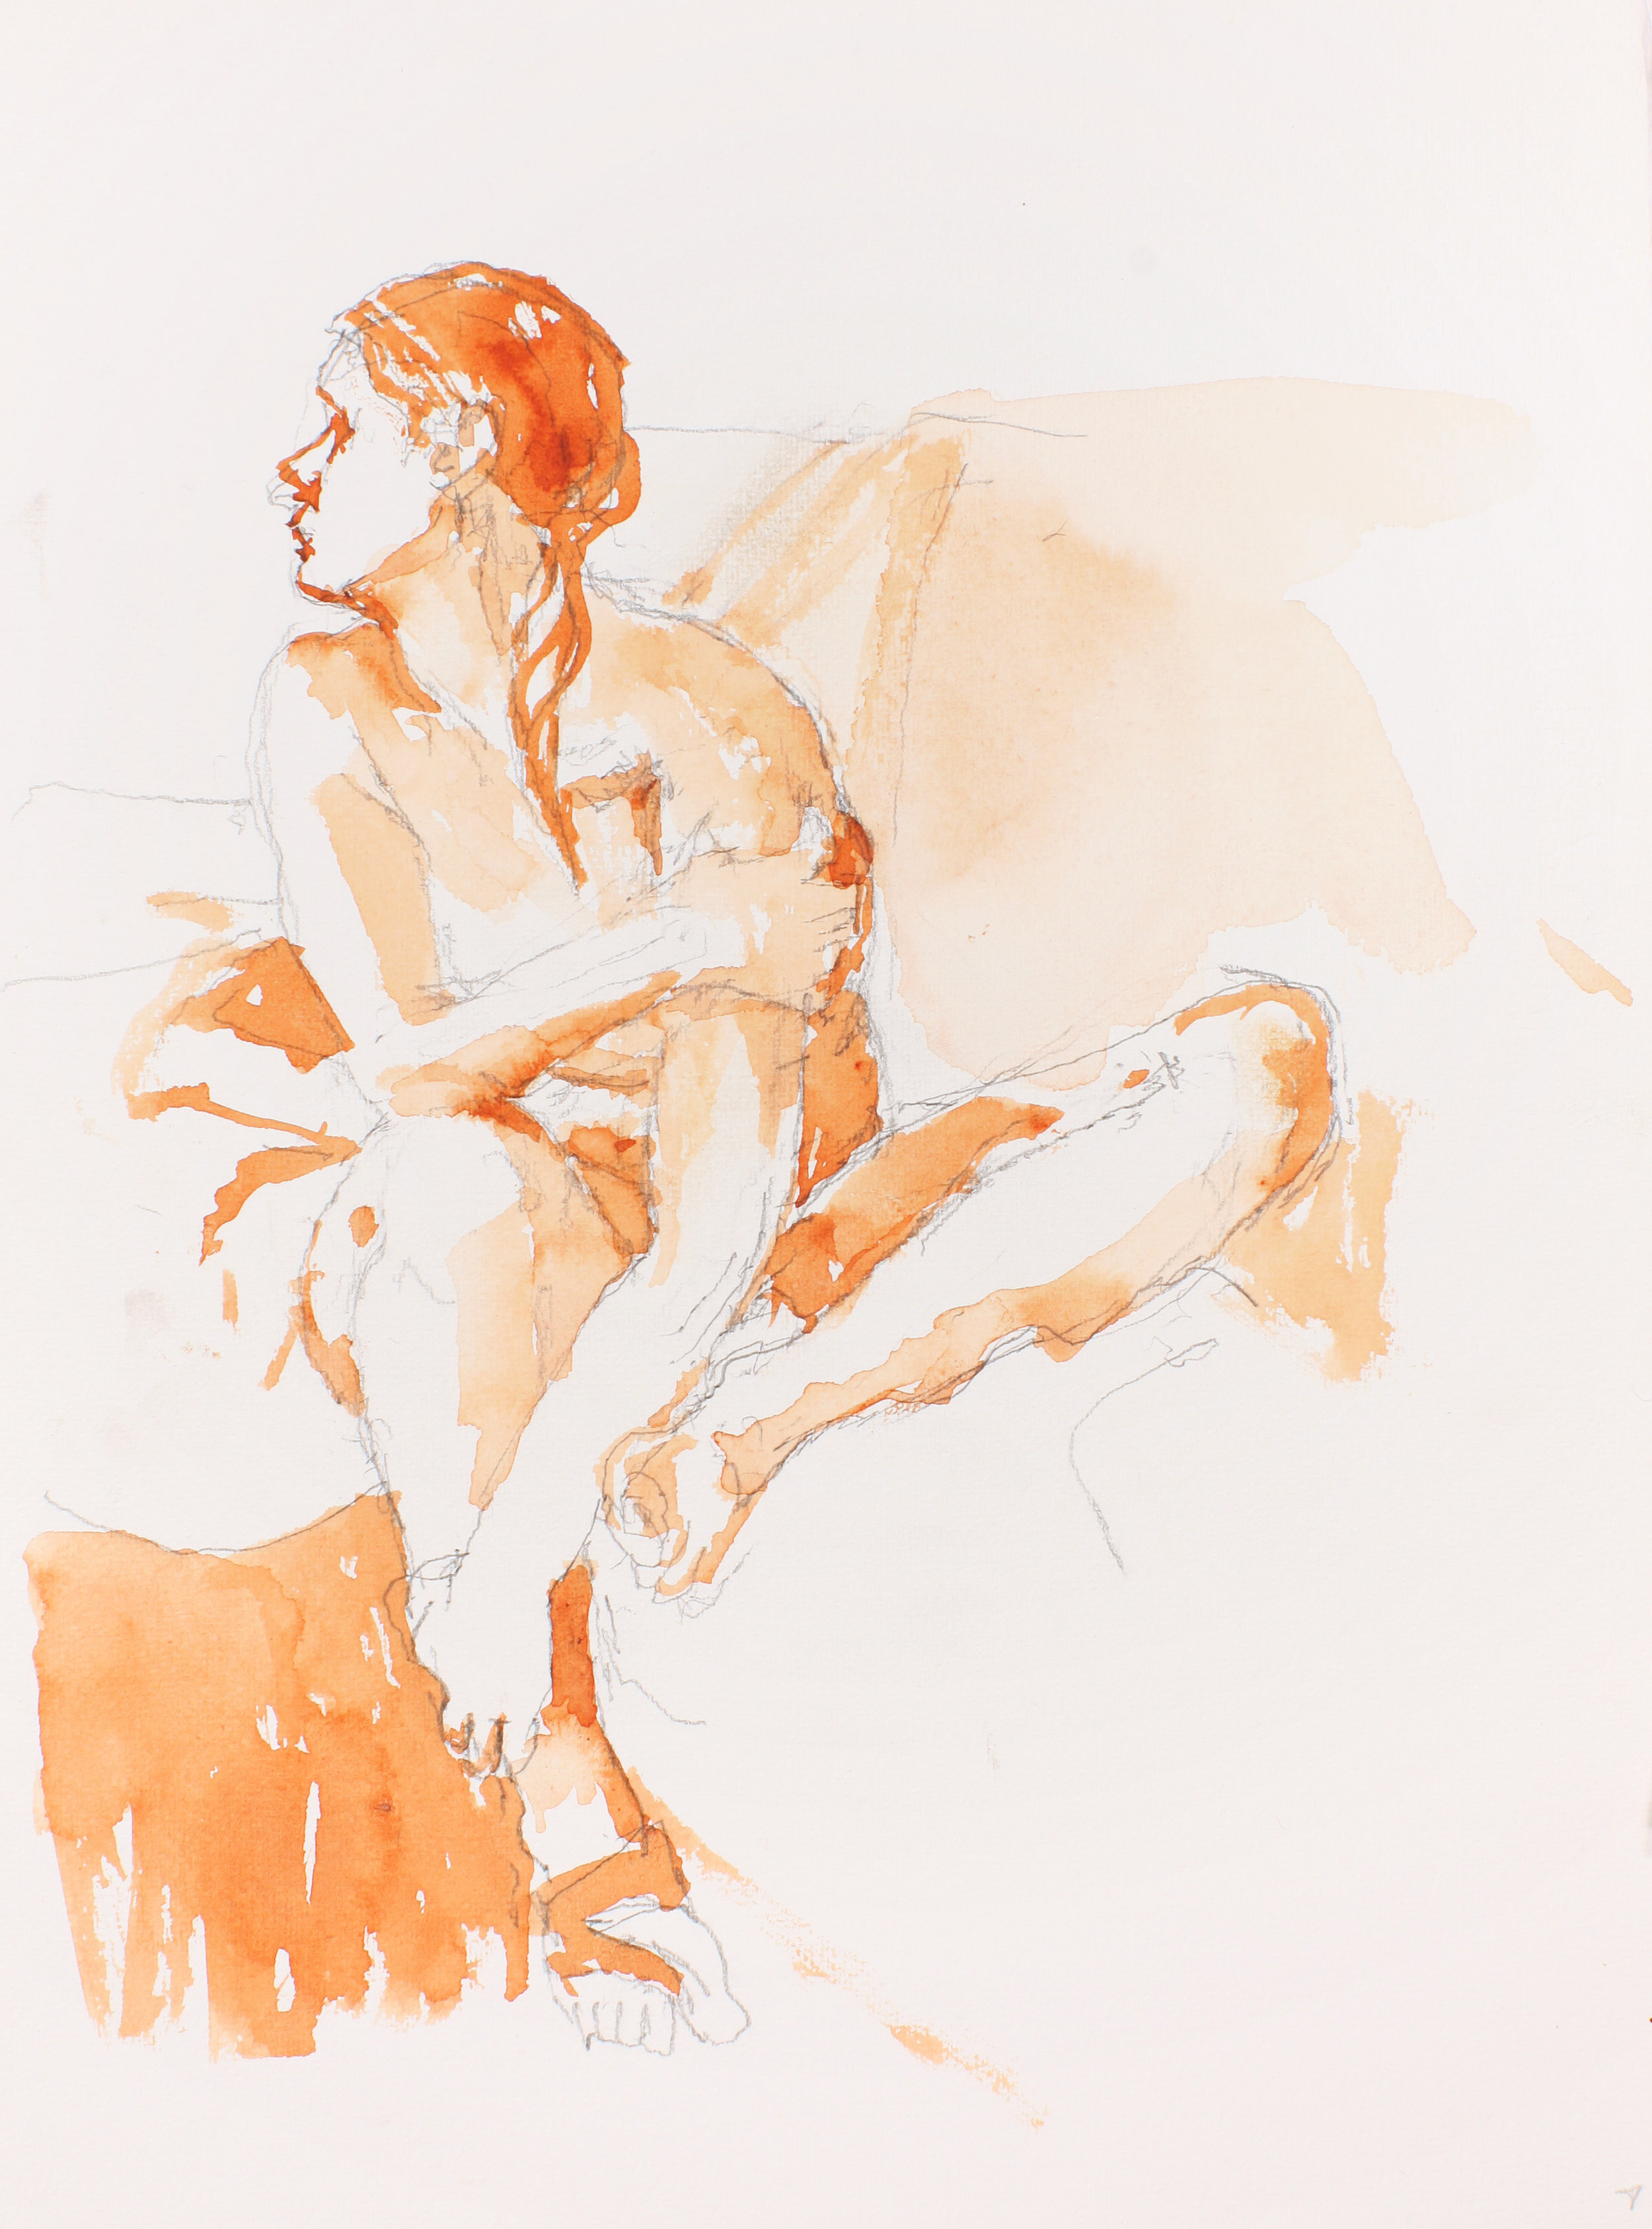 2003_Seated_Nude_with_Bent_Leg_and_Crossed_Arm_Facing_Left_watercolour_and_pencil_on_paper_15x11in_WPF229.jpg